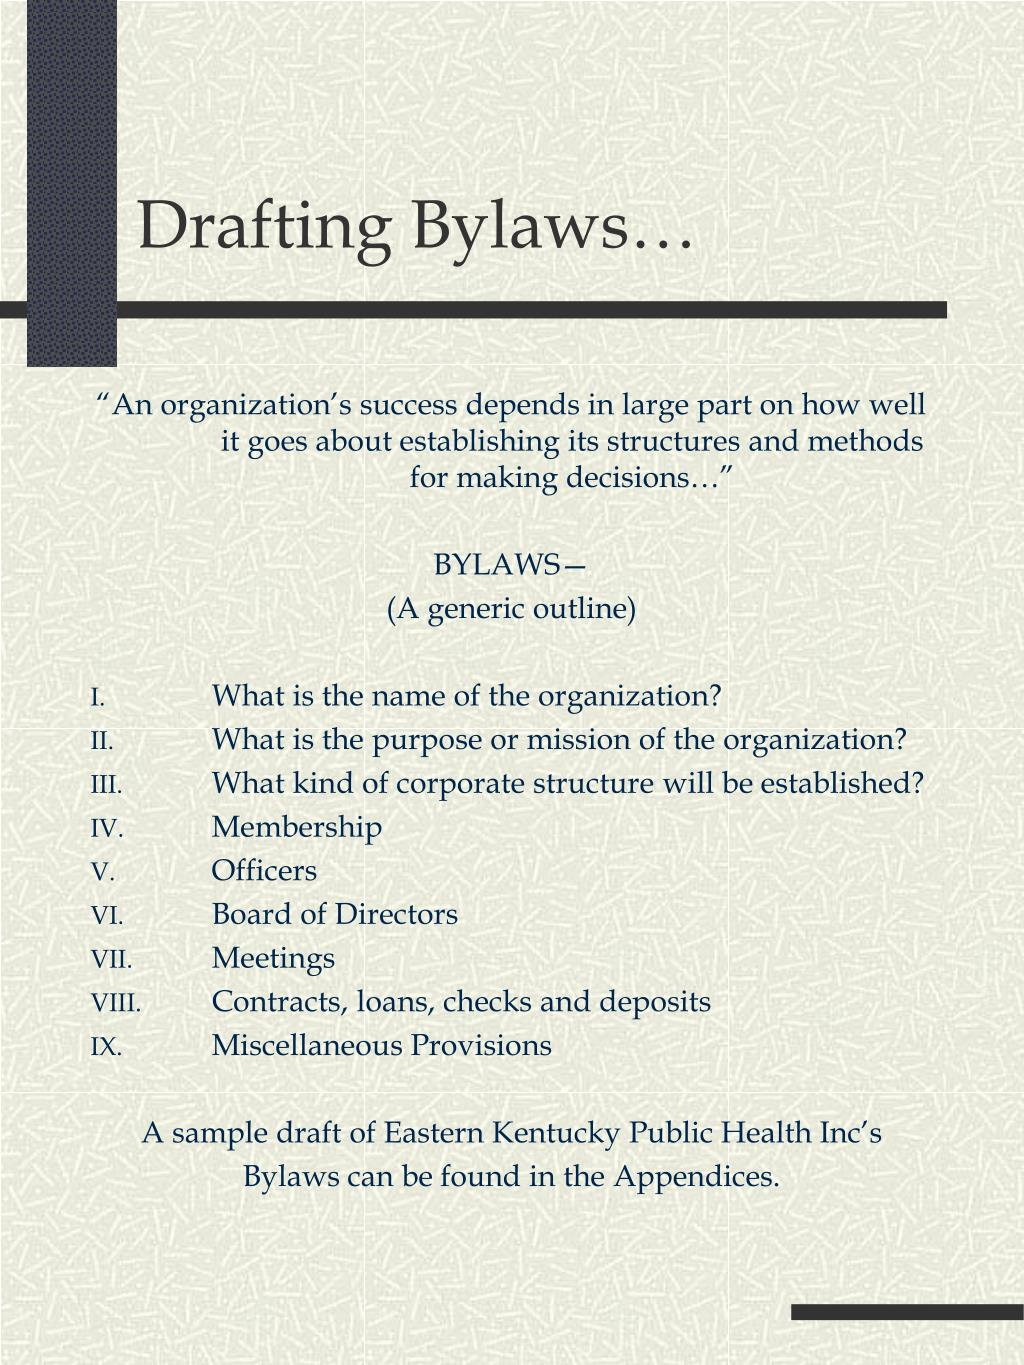 Drafting Bylaws…